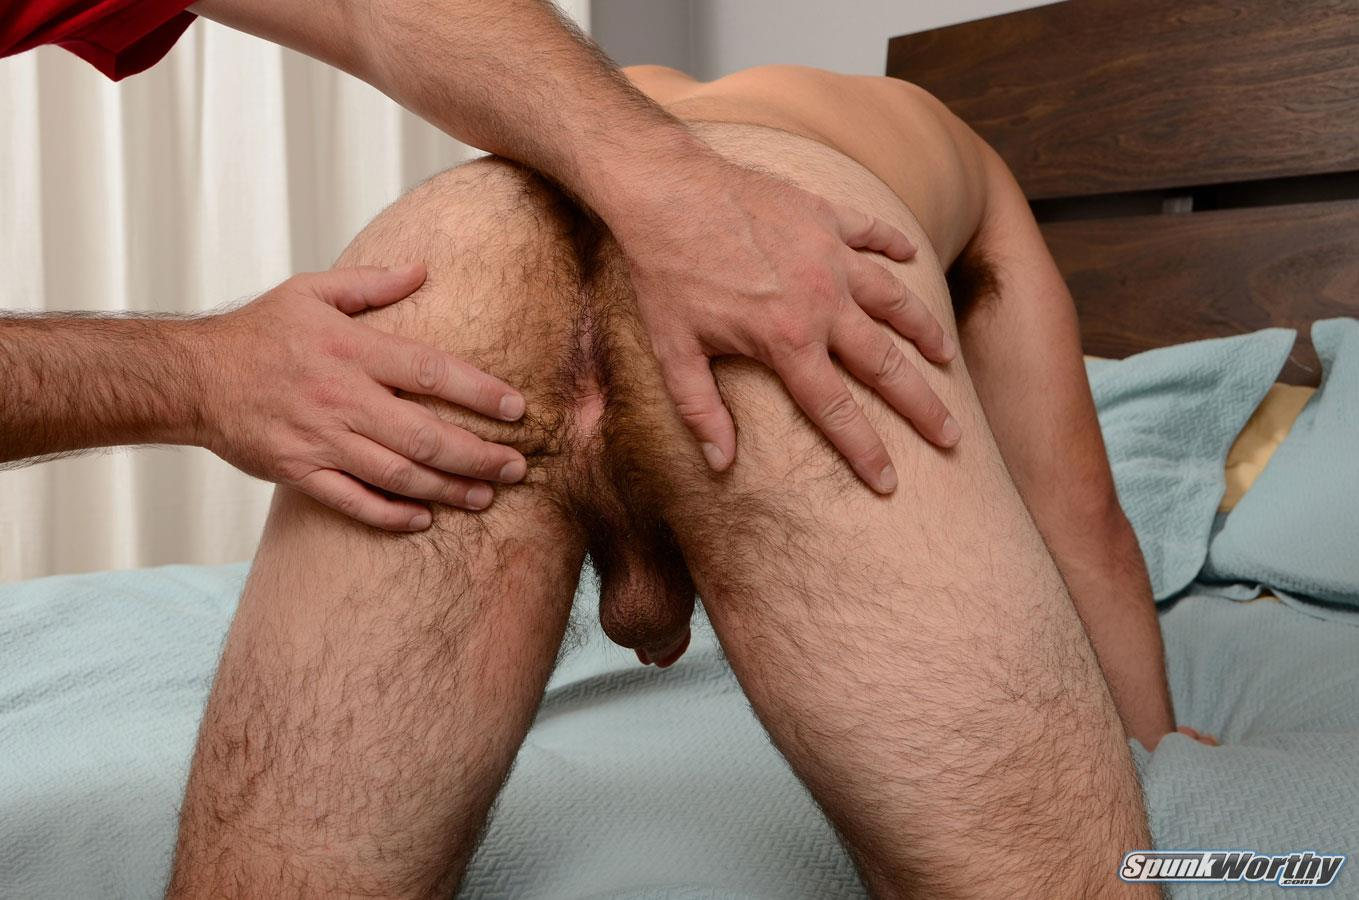 SpunkWorthy-Nevin-Straight-Marine-With-A-Hairy-Ass-Getting-A-Gay-Blowjob-Amateur-Gay-Porn-08 Straight Marine Gets Jerked and Sucked By Another Guy